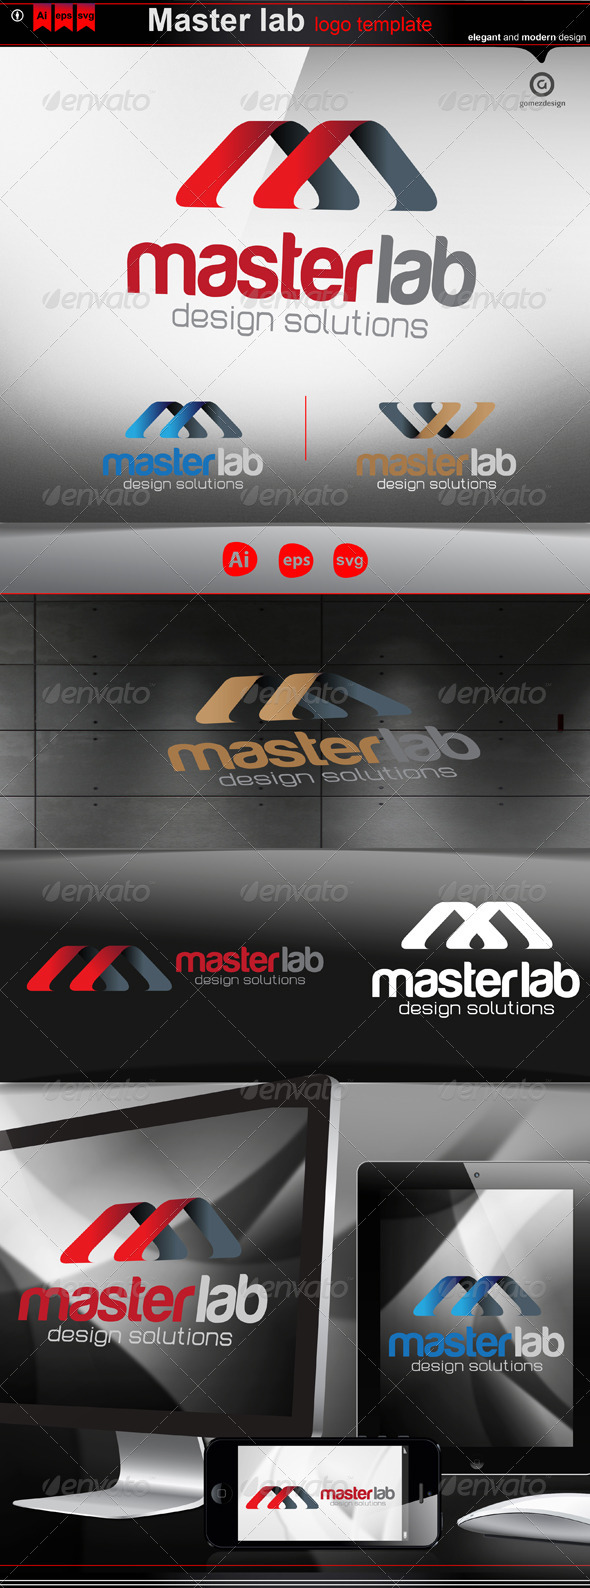 GraphicRiver Master lab 3272499